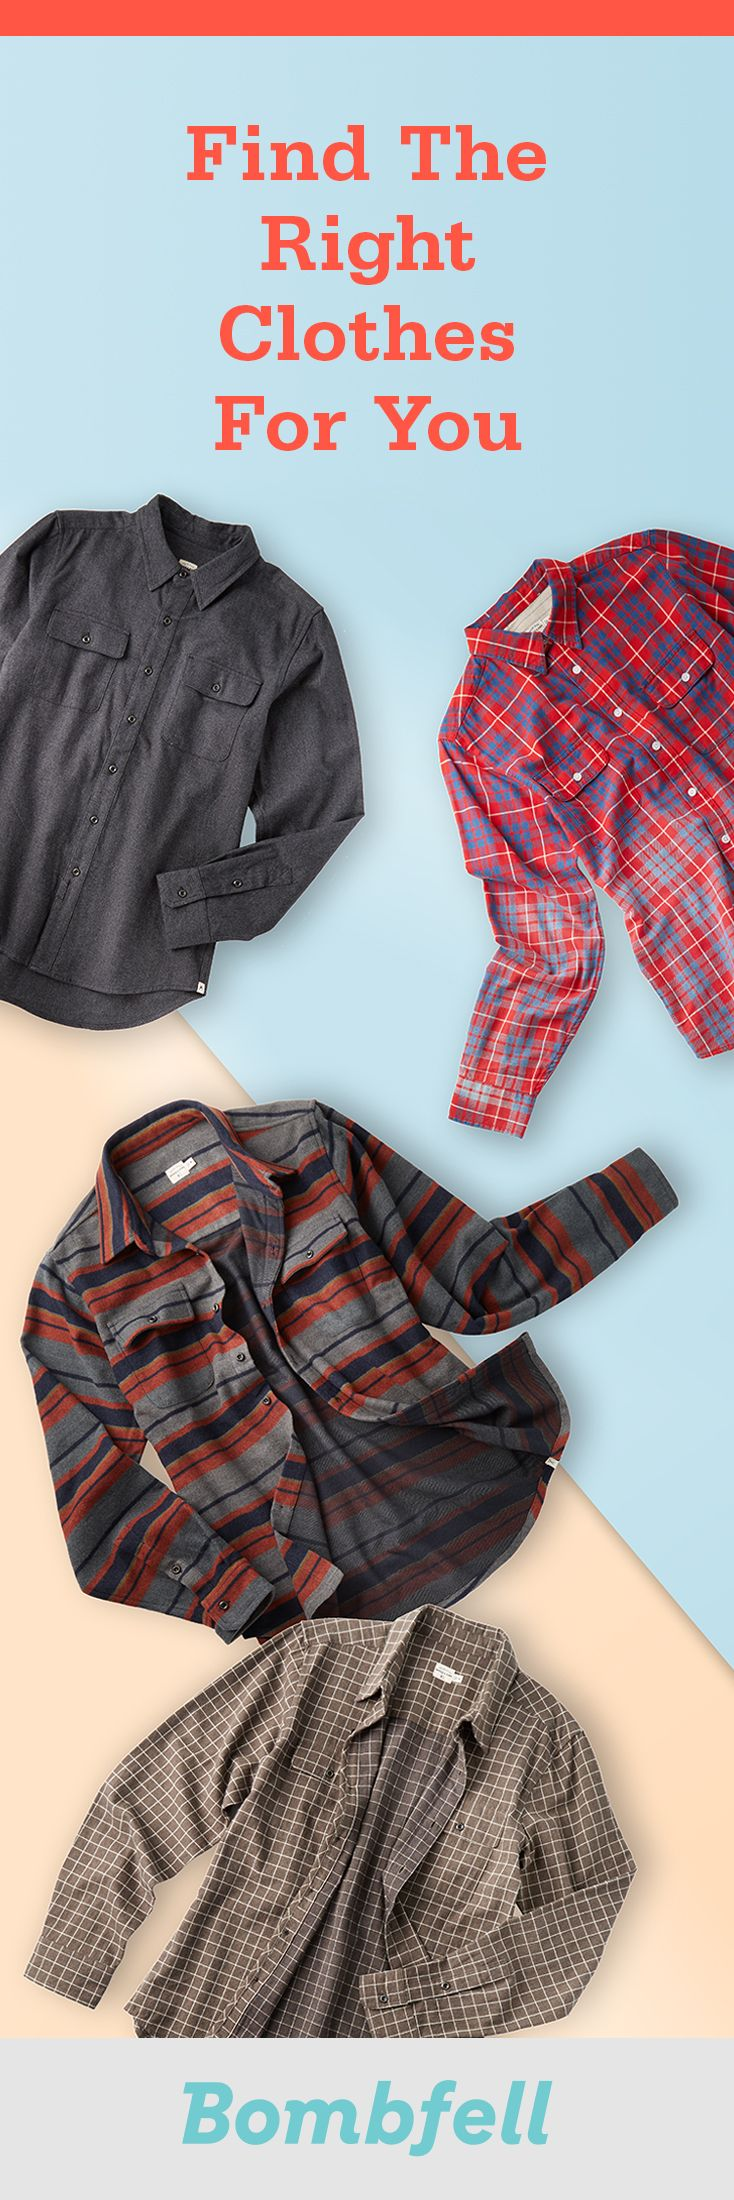 Find the right clothes for your lifestyle. Sign up for Bombfell today.